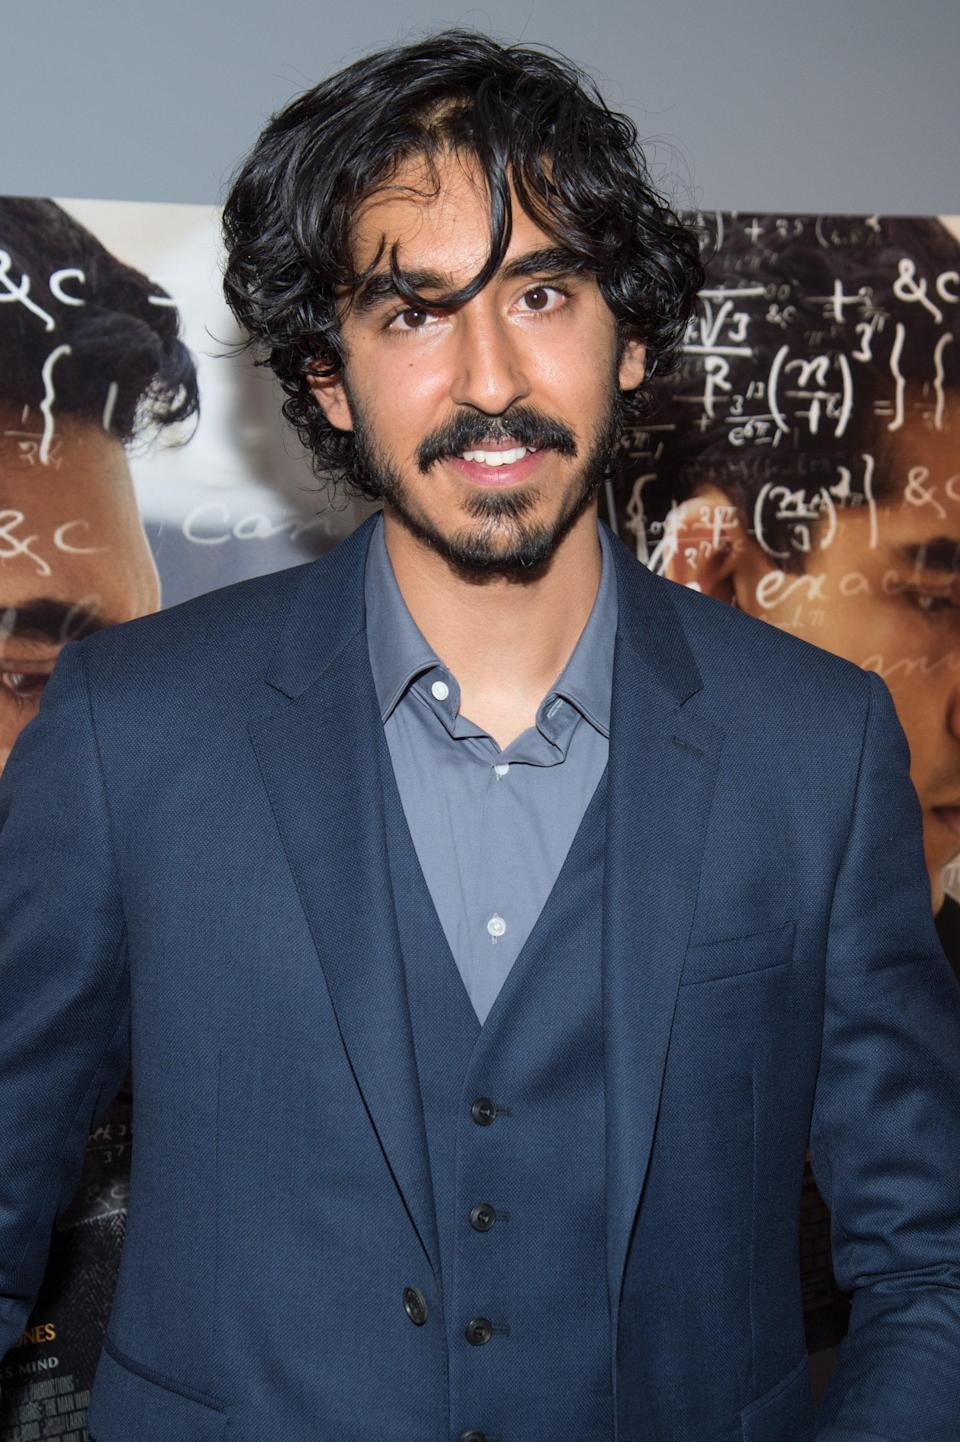 The British-Indian actor made a smash on the big screen with his award-winning film <em>Slumdog Millionaire</em>. Dev strongly followed up with his starring roles in <em>The Last Airbender</em>, <em>The Second Best Exotic Marigold Hotel</em>, and <em>Lion</em>, which earned him a nomination for the Academy Award for Best Supporting Actor.